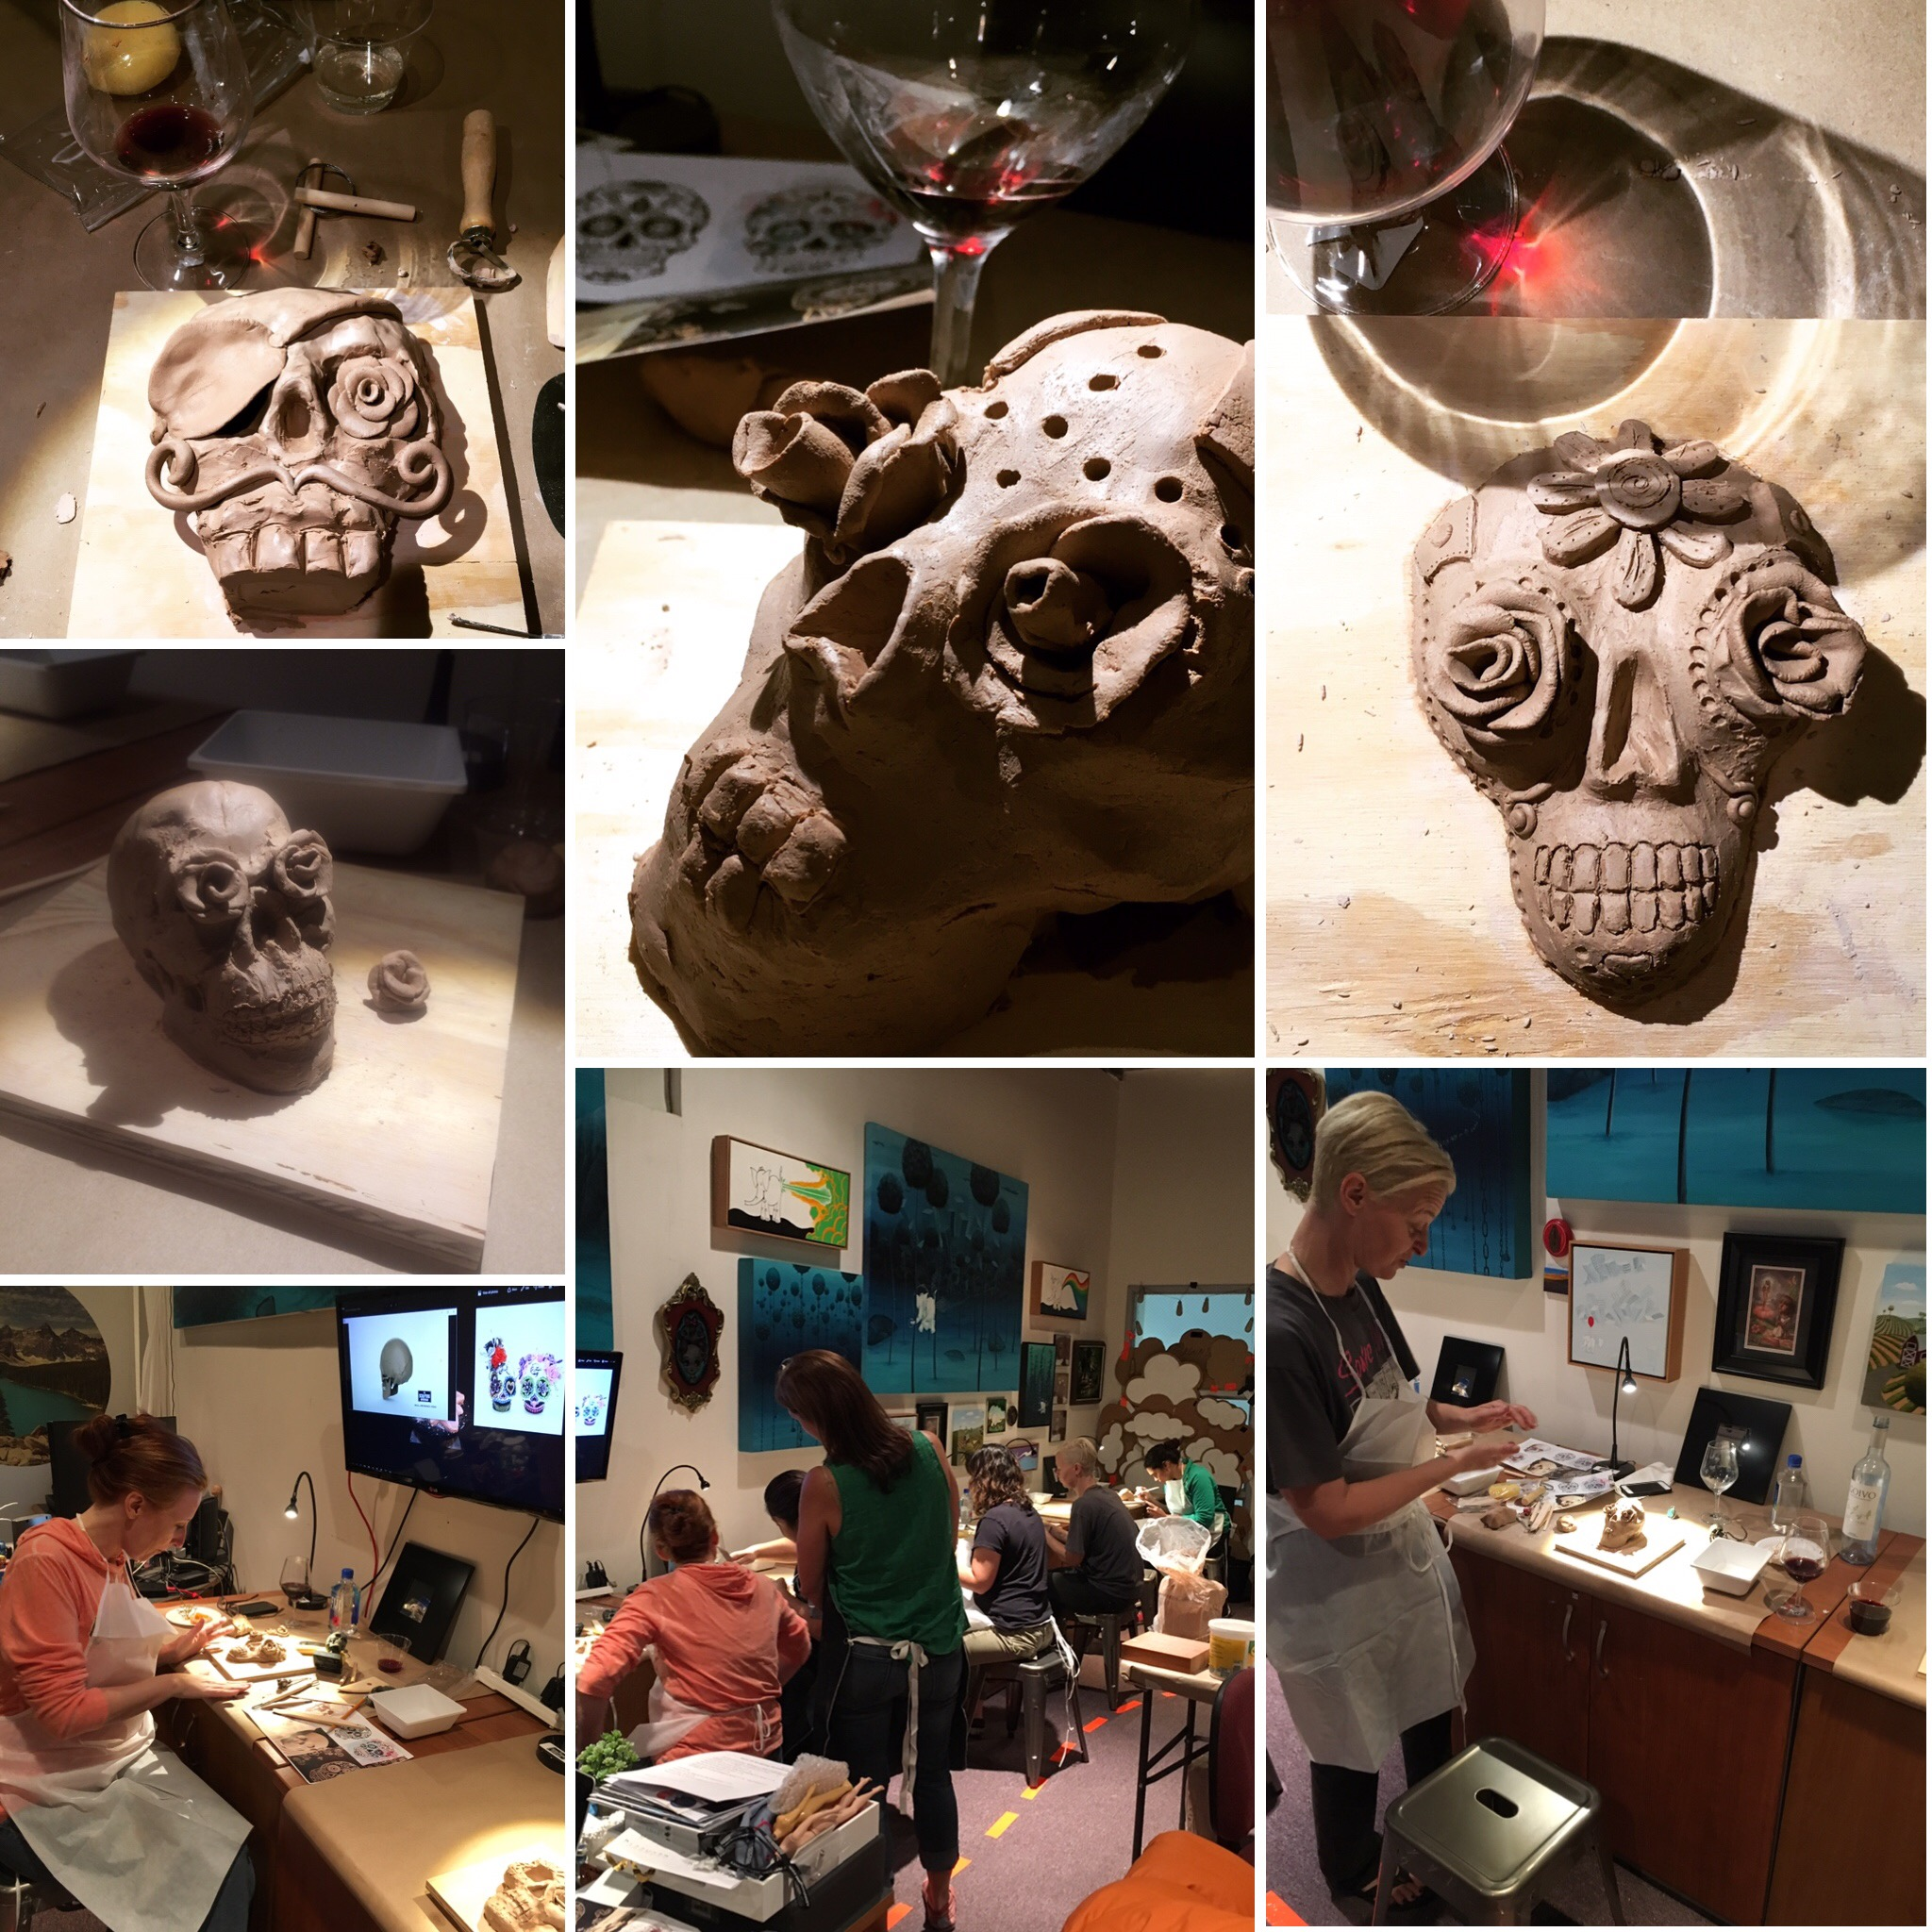 workshop in progress - No Experience NecessaryWe supply: The Instruction The Motivation Water based clay Clay tools (you can keep) Snacks (cheese board, bread, crackers, fruit, veggies and chocolate) The Wine Apron Non-alcoholic beverages and a great time!